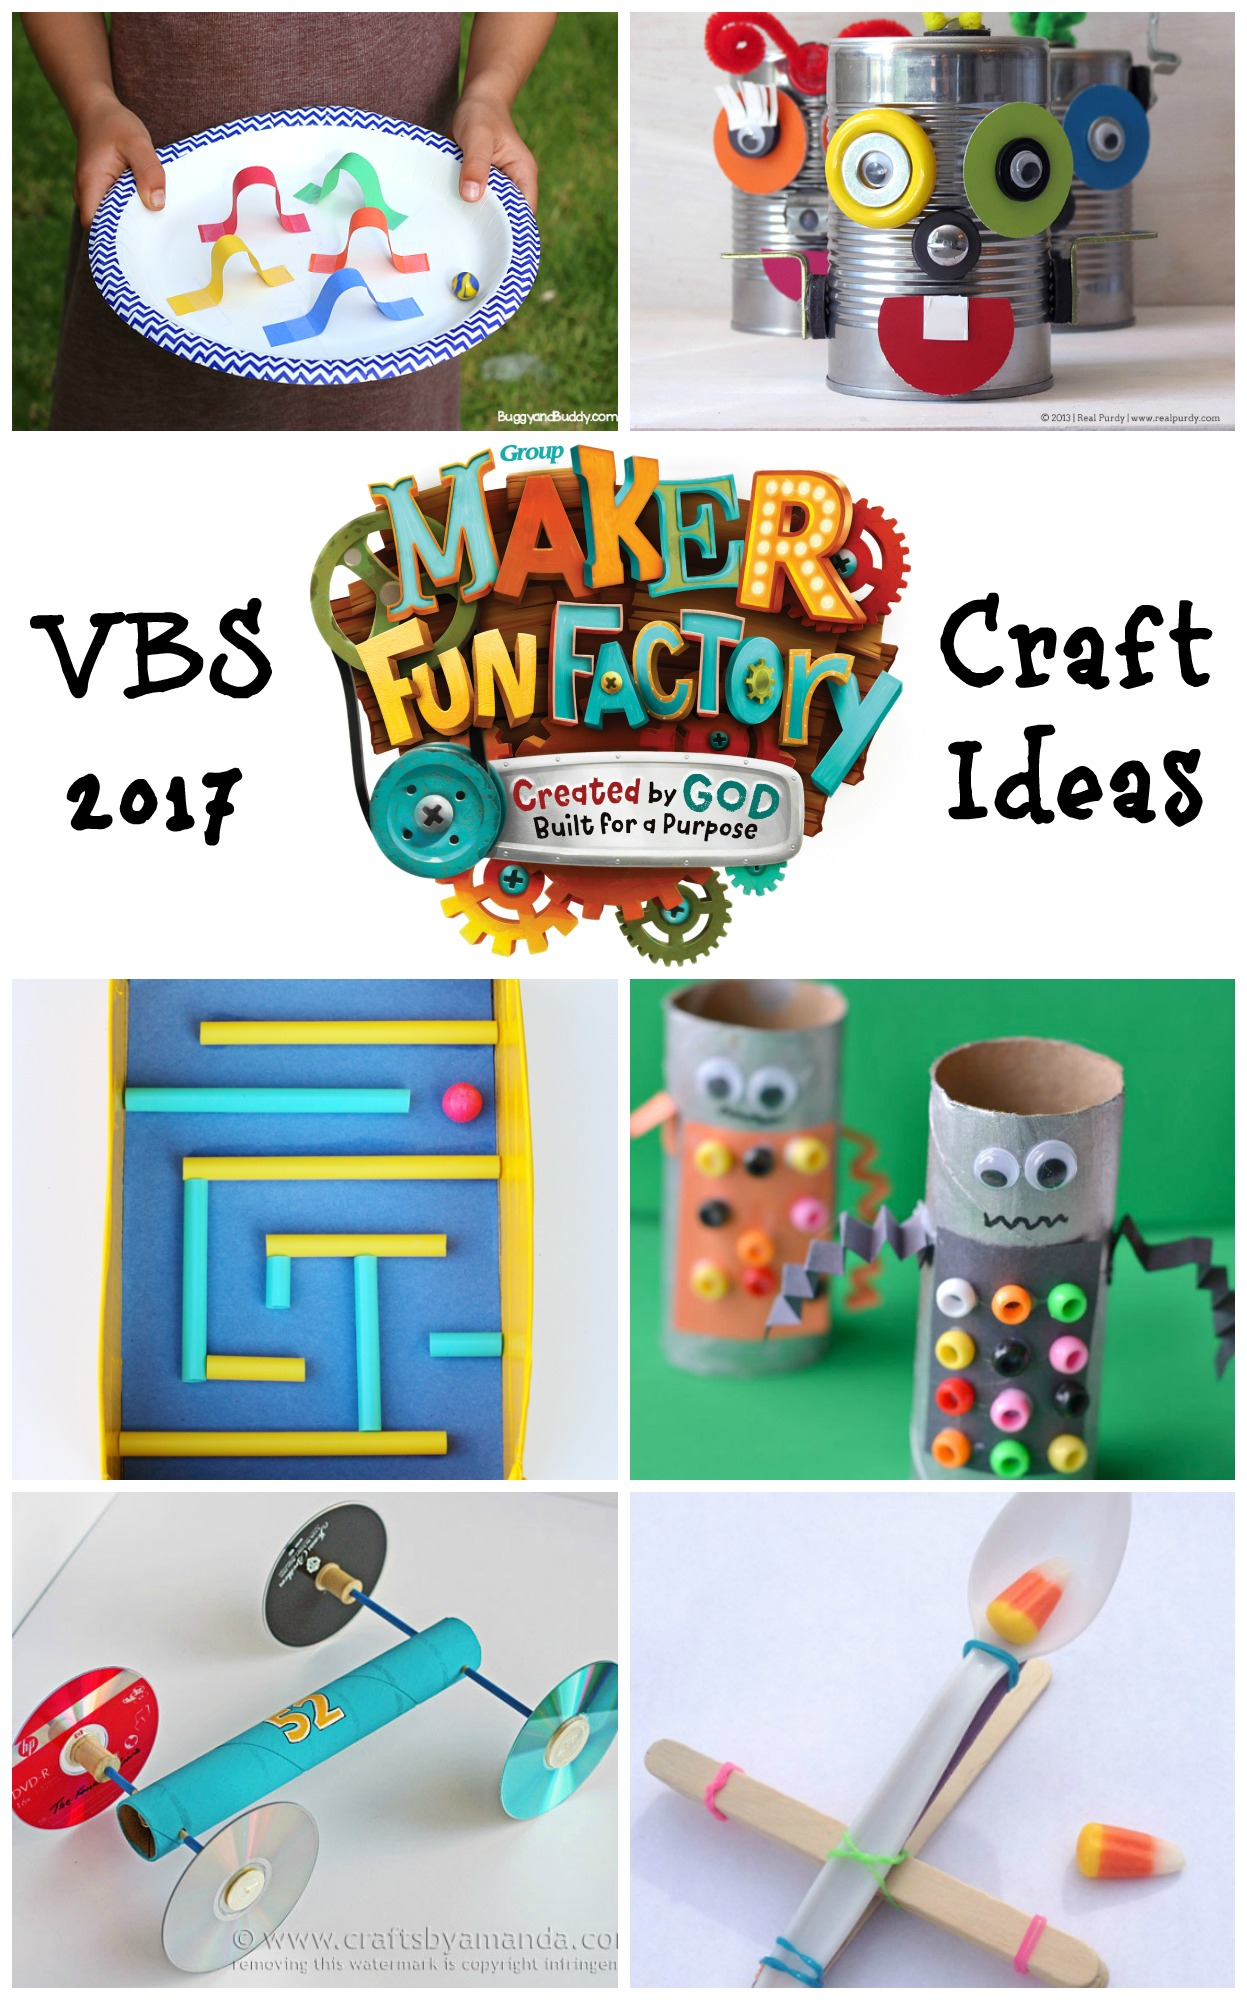 2019 Vbs Decorating Ideas Maker Fun Factory Maker Fun Factory VBS Craft Ideas   Southern Made Simple